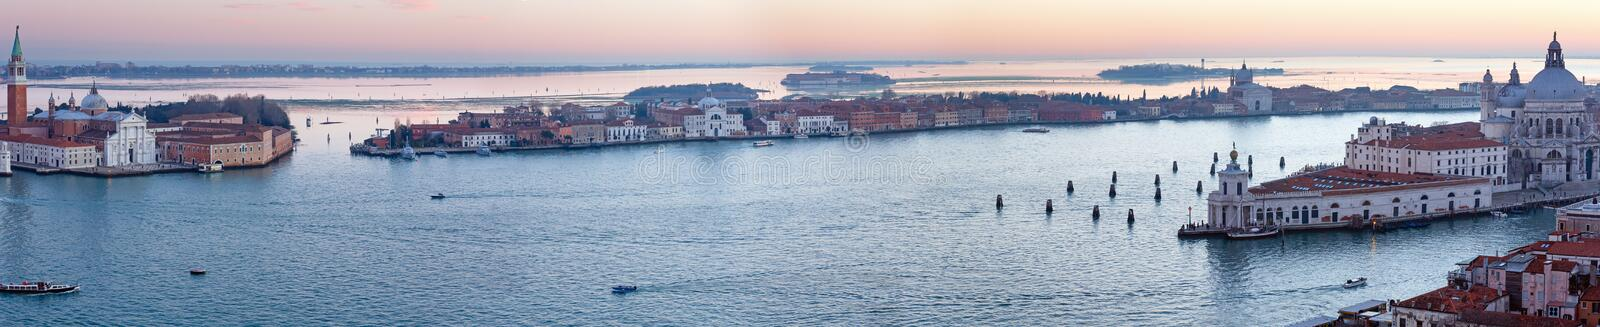 Venice city (Italy) sunset view. Panorama. The Island of San Giorgio Maggiore. Venice city (Italy) sunset view. Panorama. All peoples unrecognizable royalty free stock image